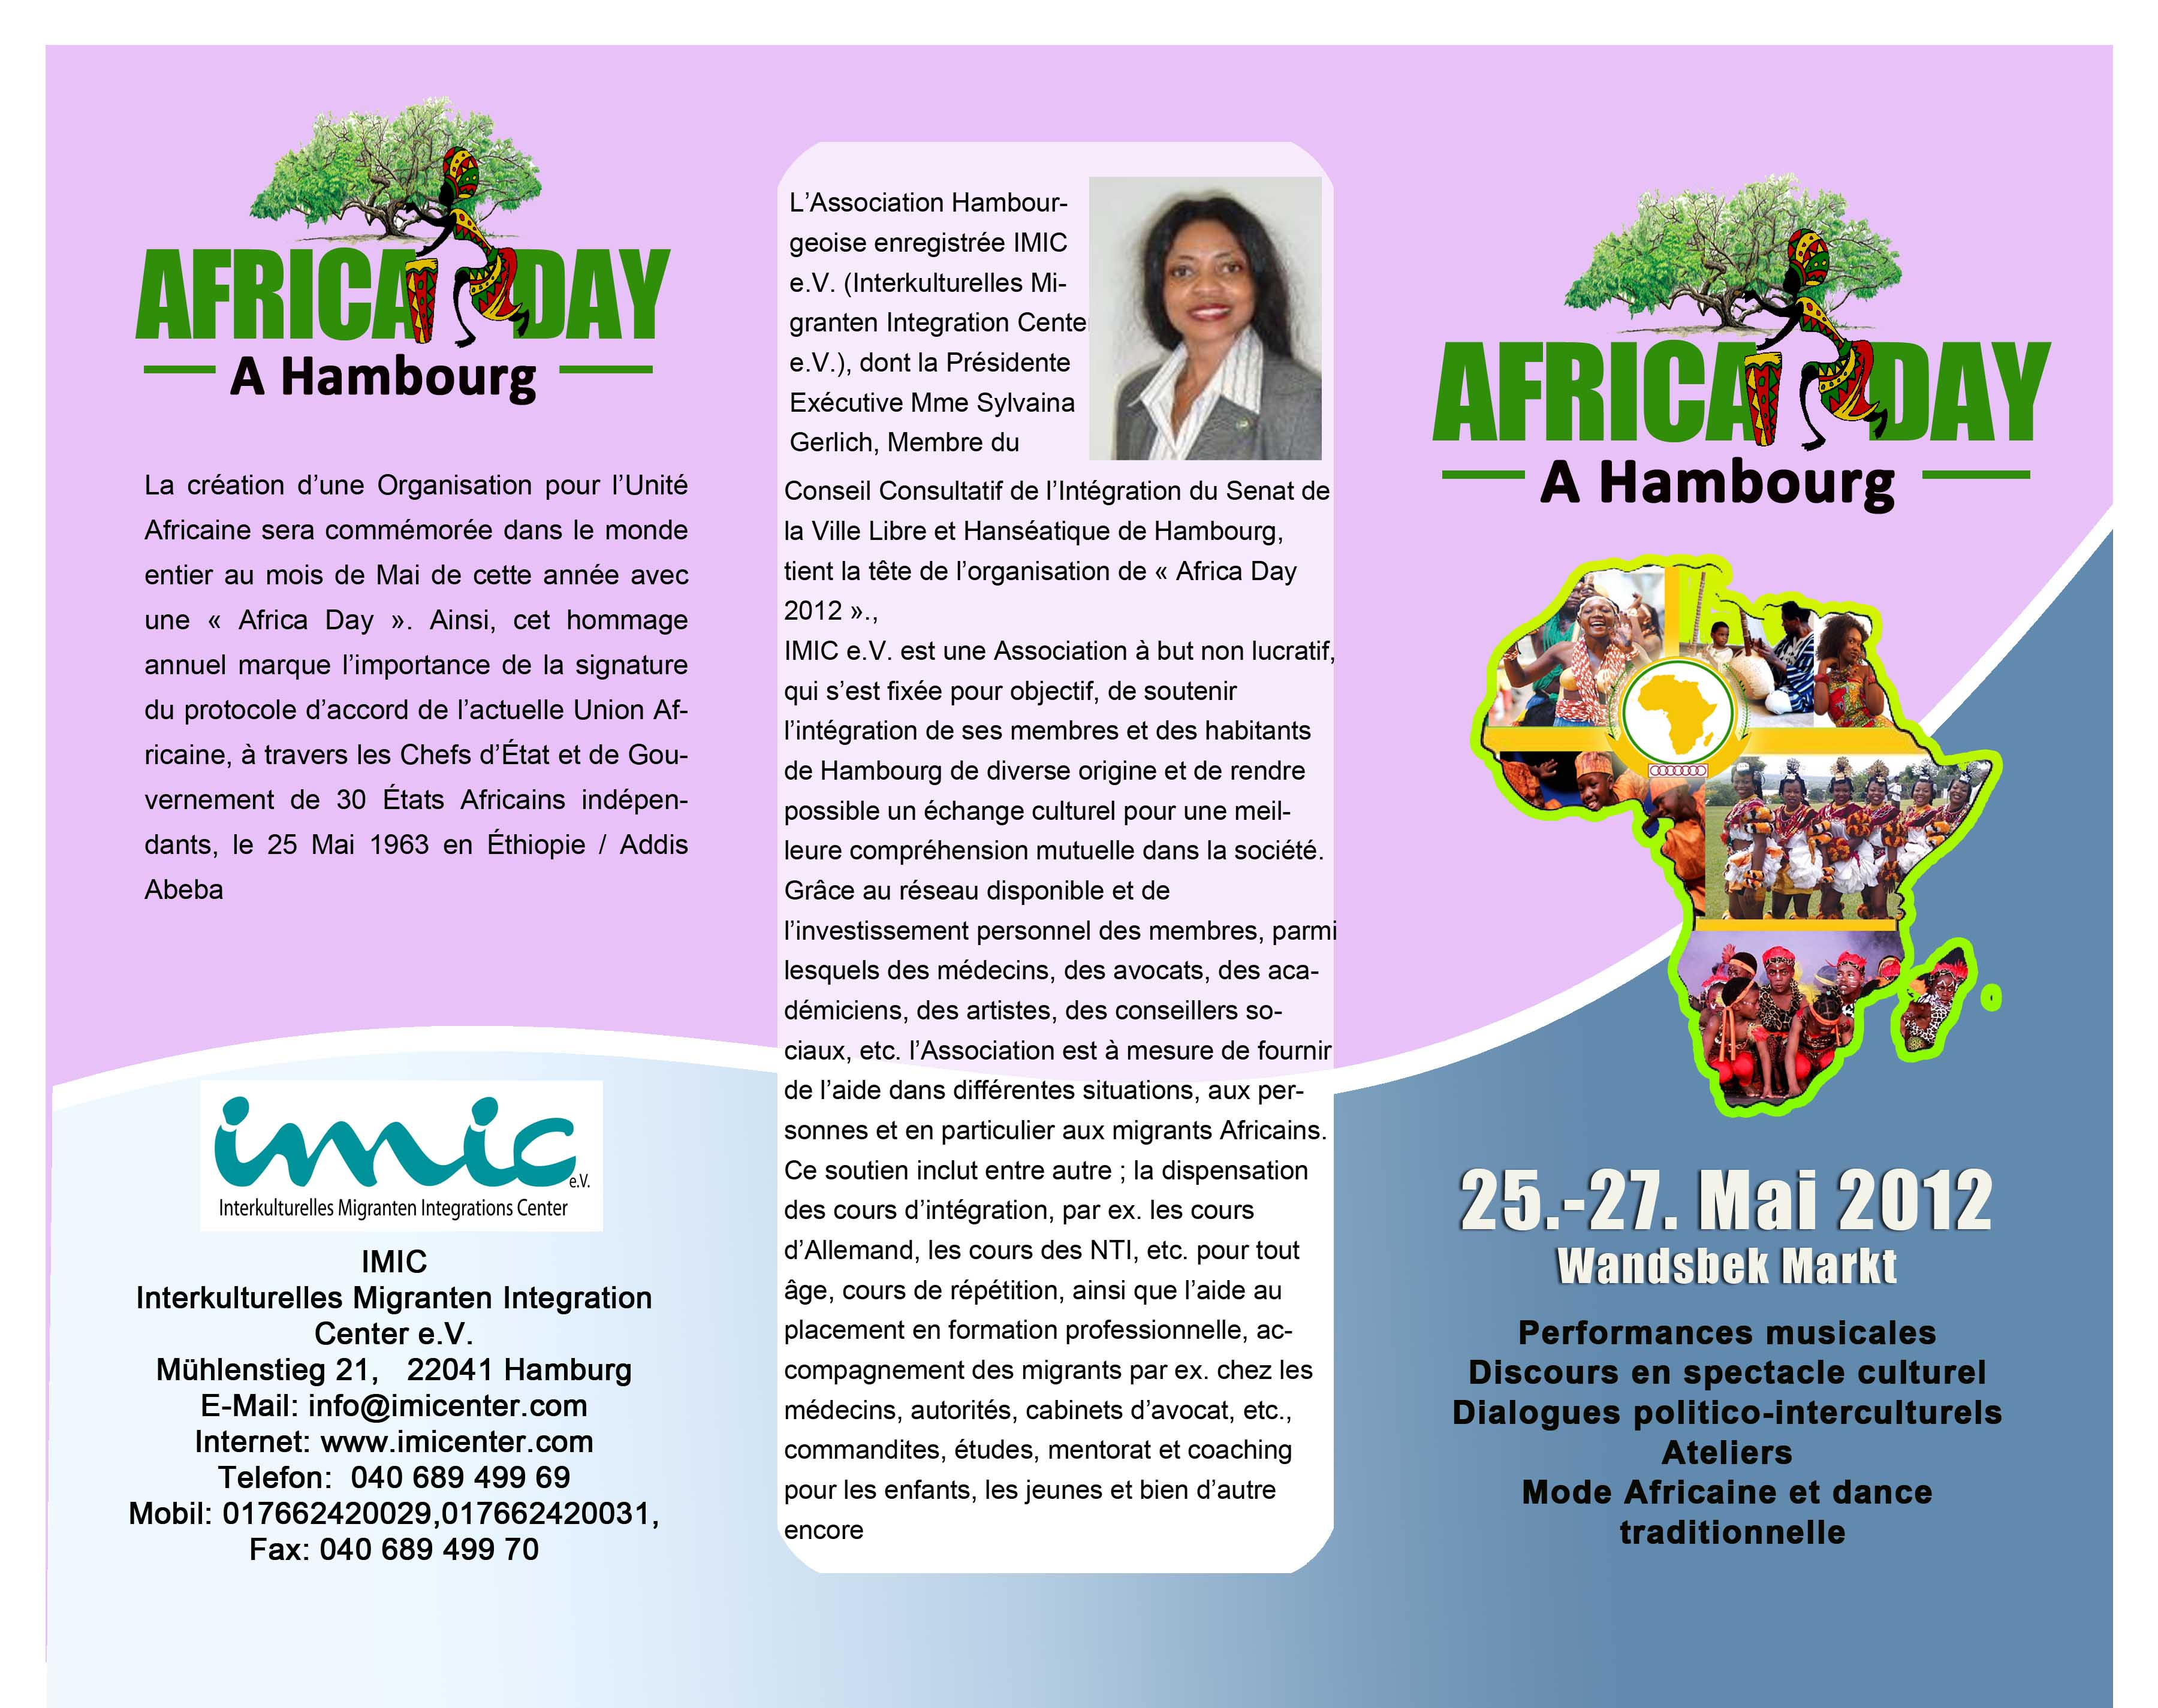 Africa Day Flyer - French 1